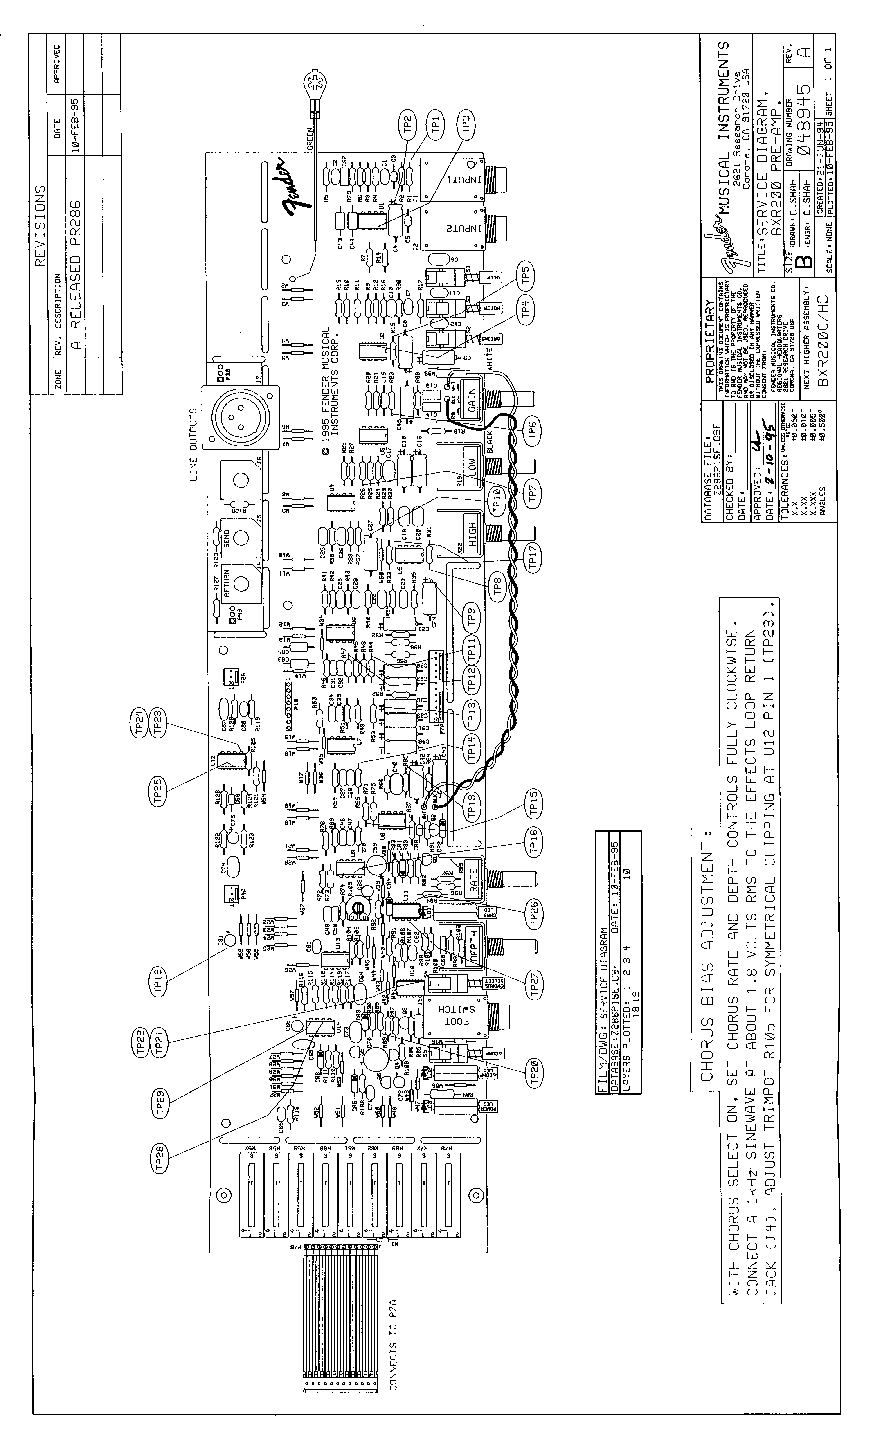 FENDER BXR-200 SCH Service Manual download, schematics